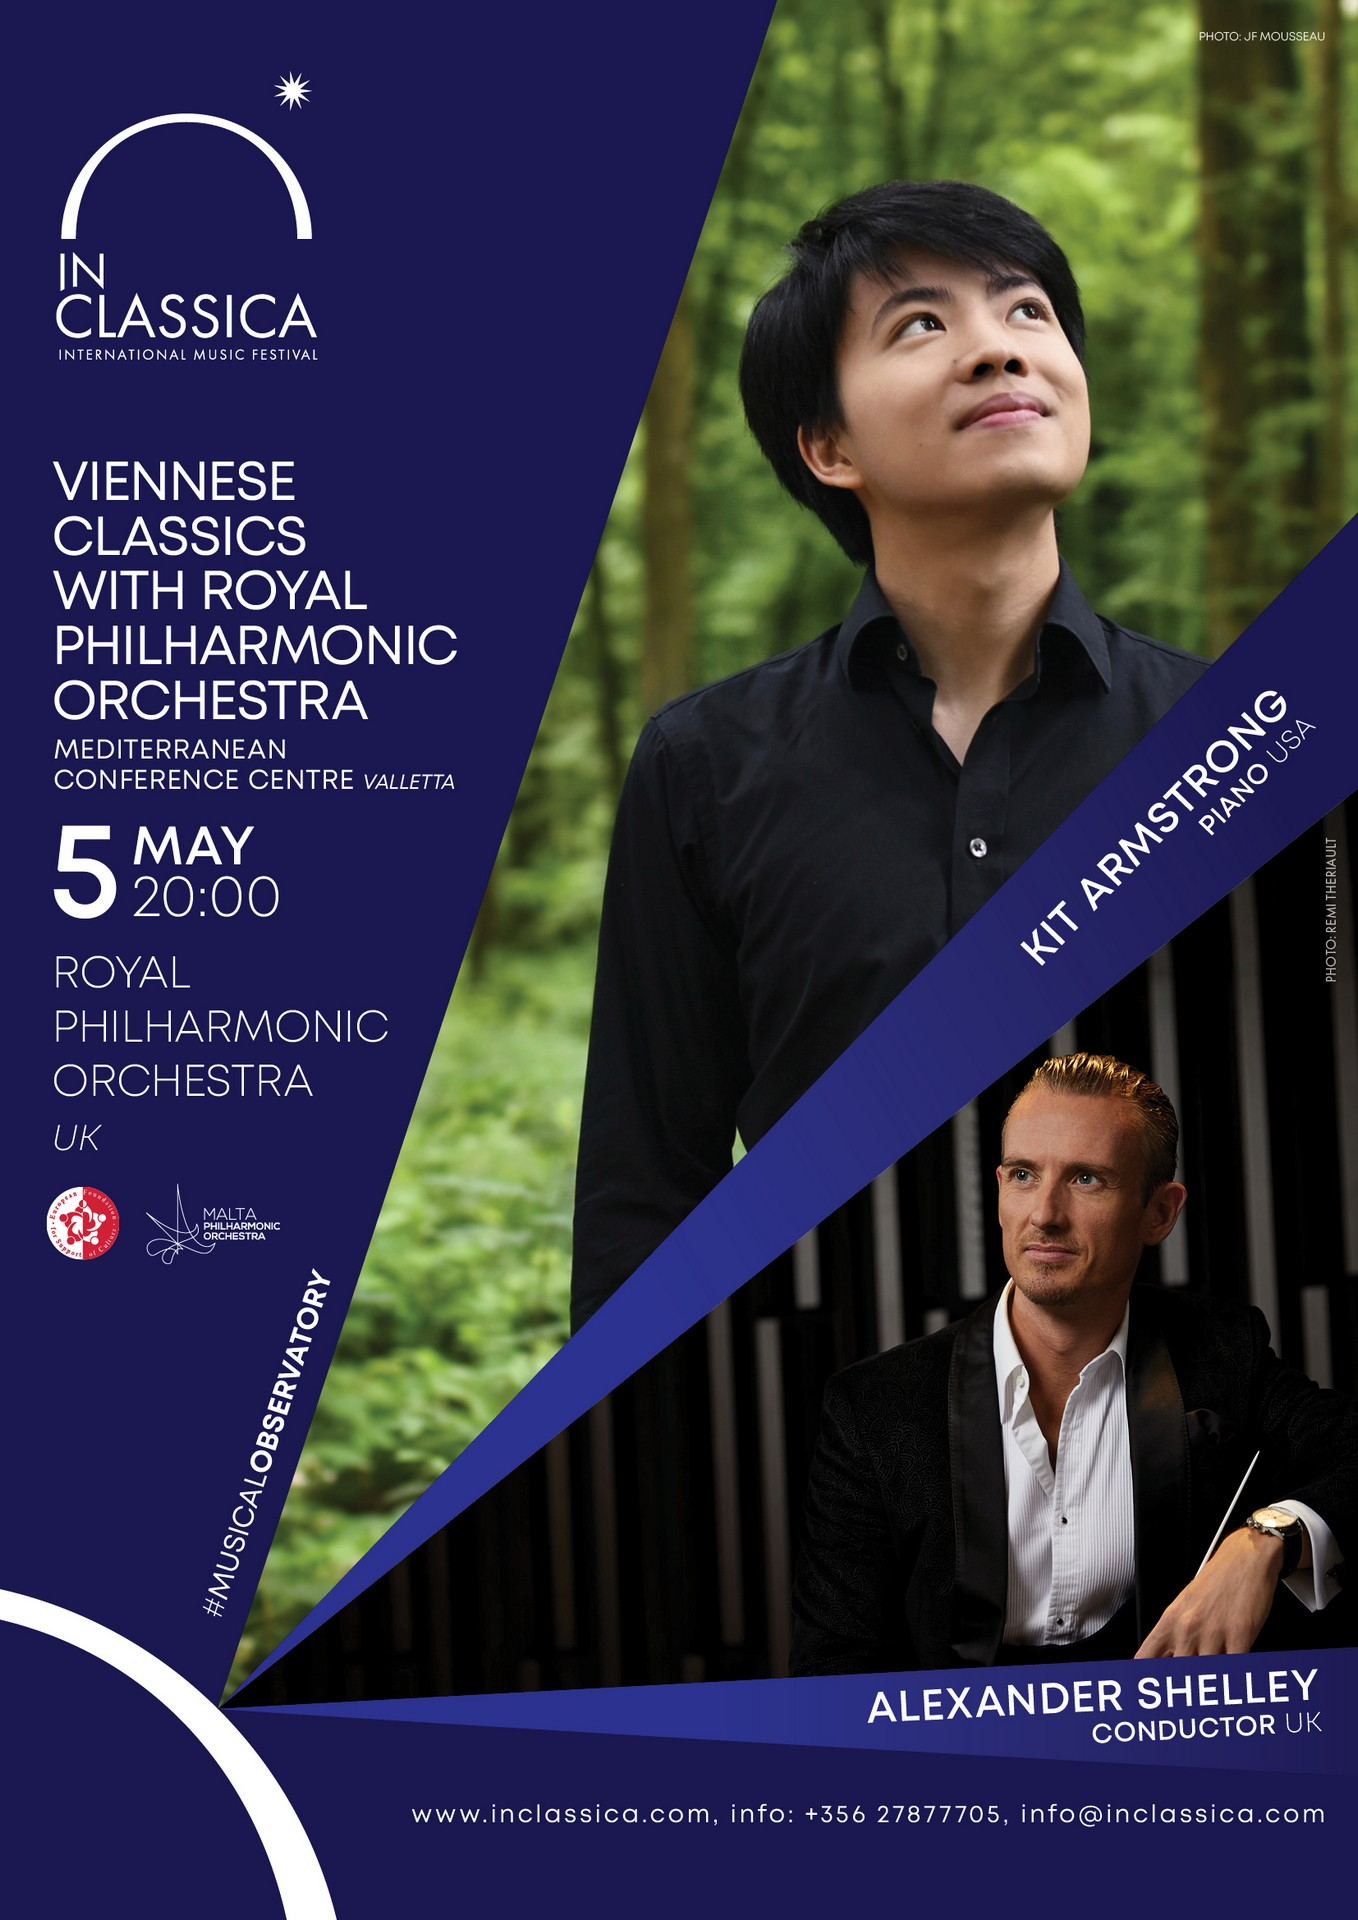 InClassica: VIENNESE CLASSICS WITH ROYAL PHILHARMONIC ORCHESTRA flyer